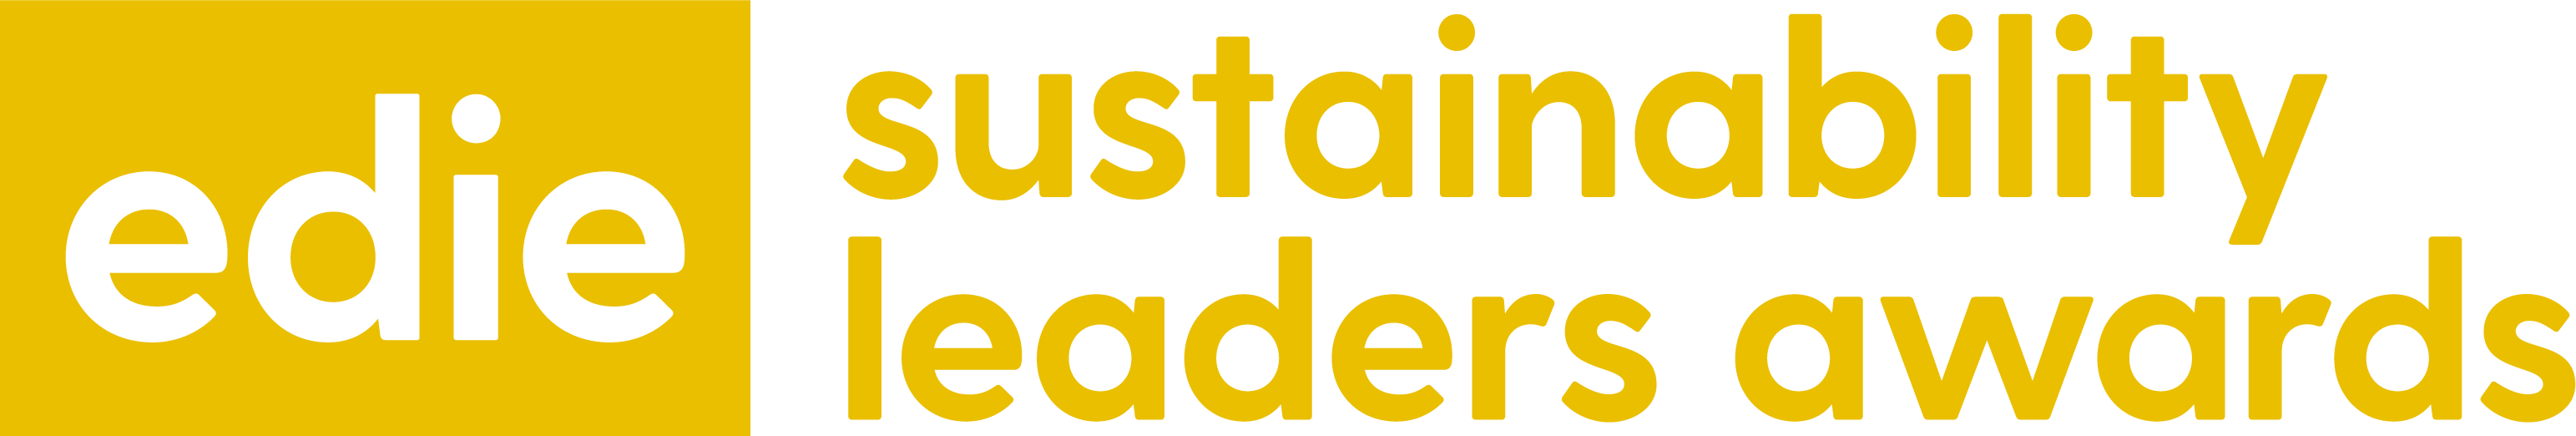 edie Sustainability Leaders Awards 2020